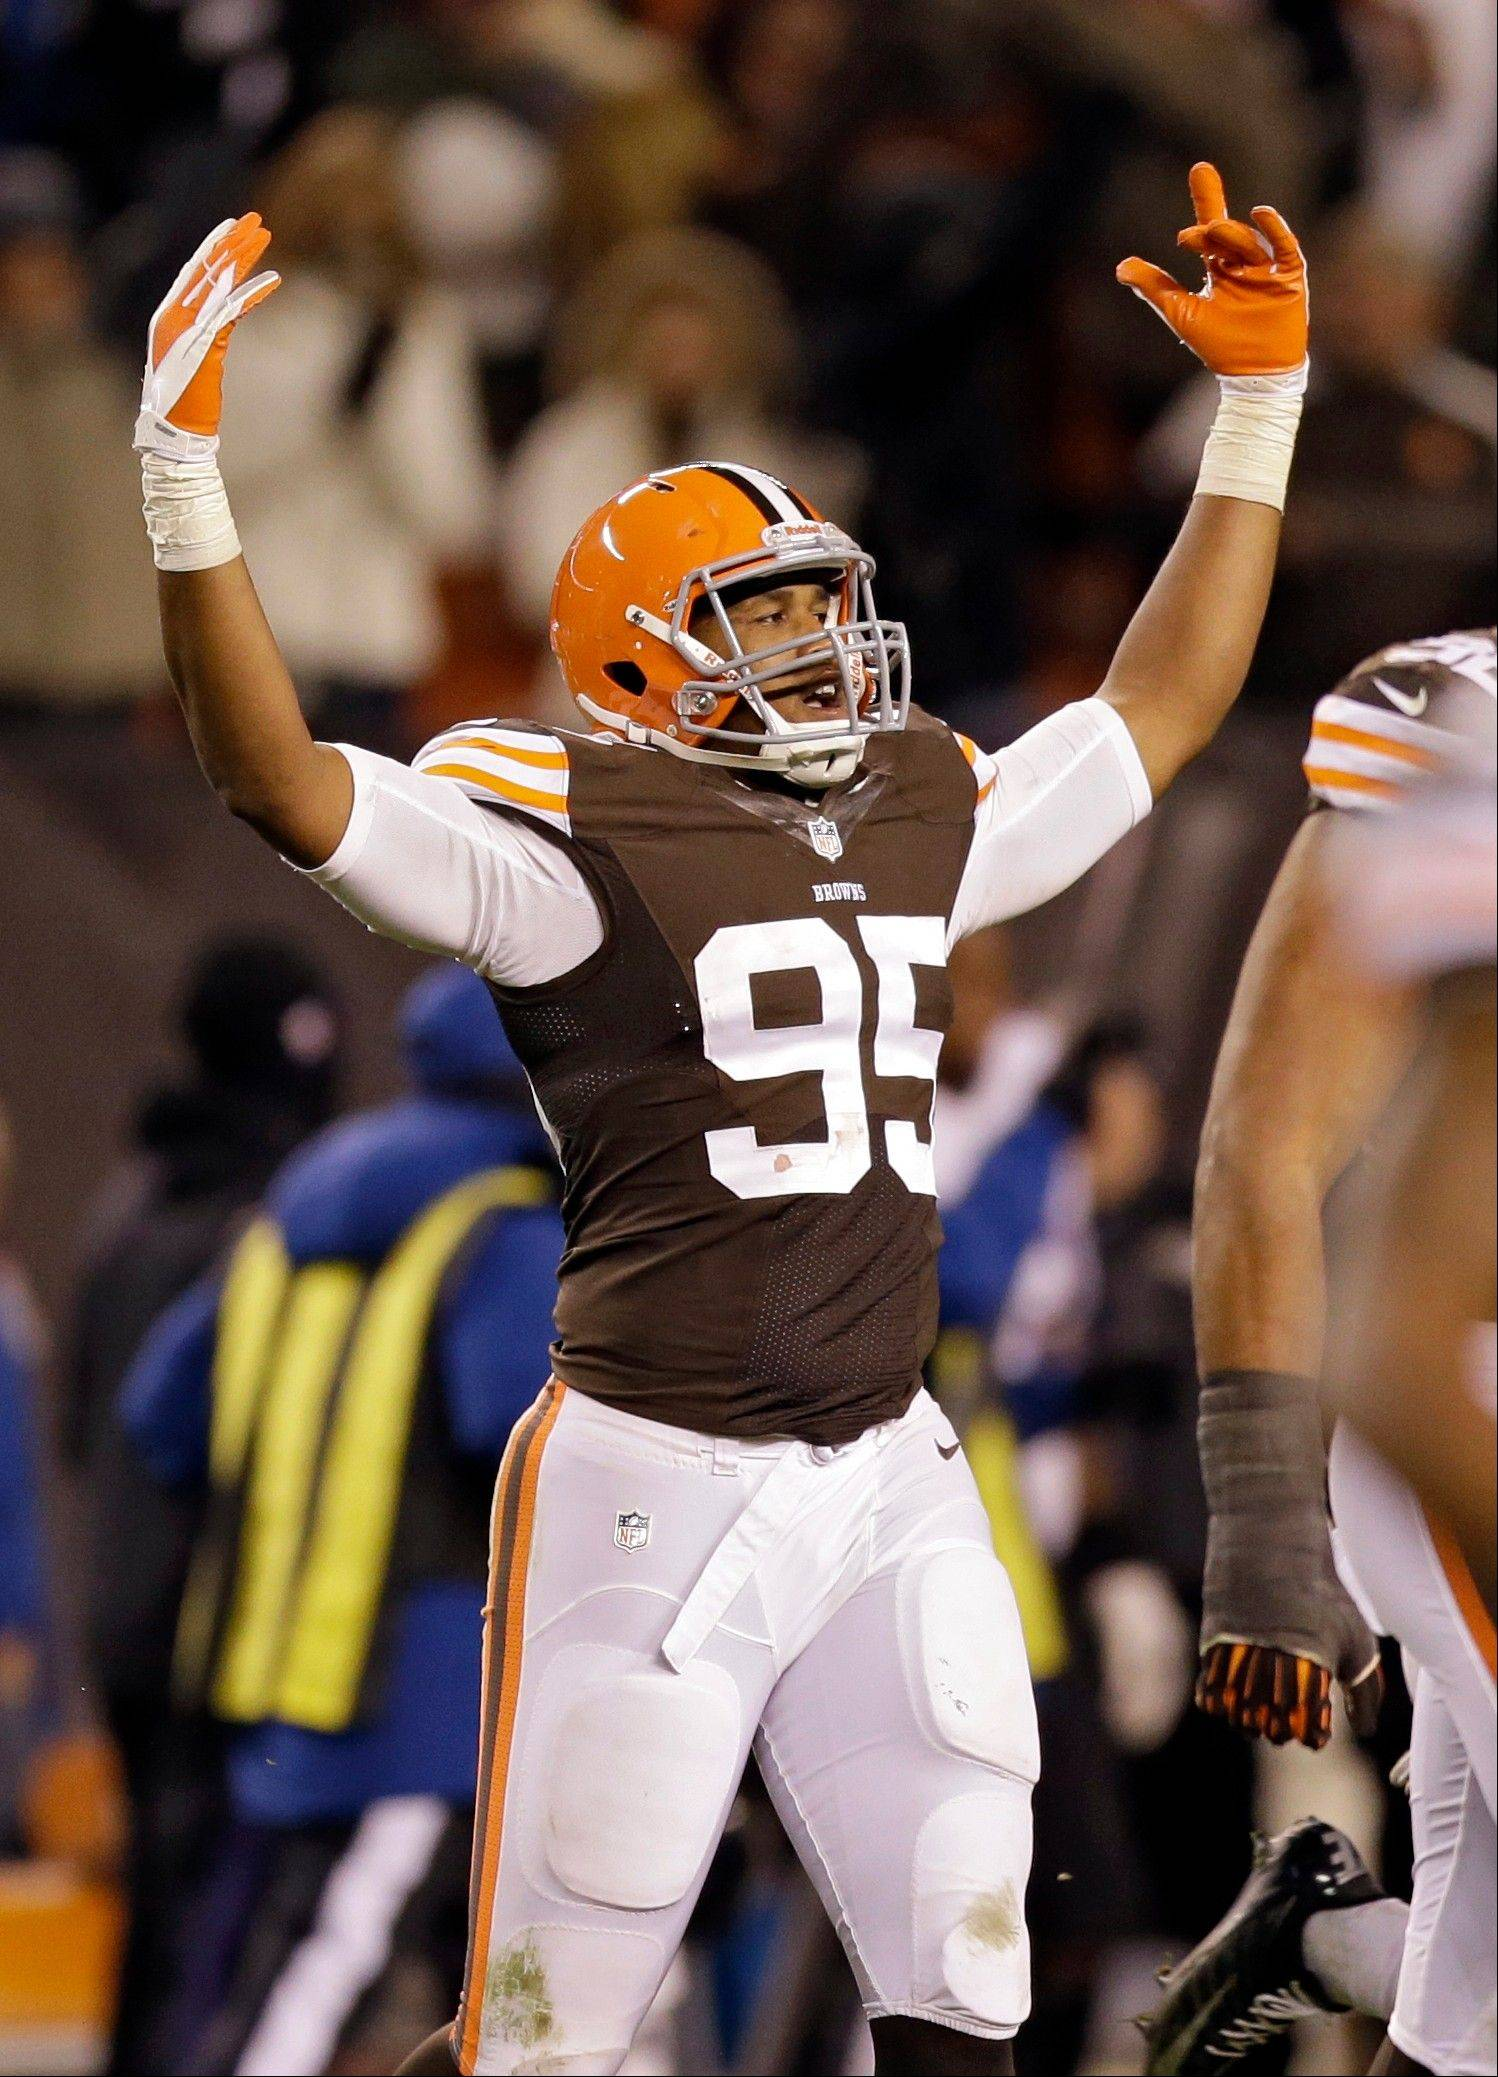 Cleveland Browns defensive end Armonty Bryant celebrates after a 24-18 win over the Baltimore Ravens in an NFL football game Sunday, Nov. 3, 2013, in Cleveland.